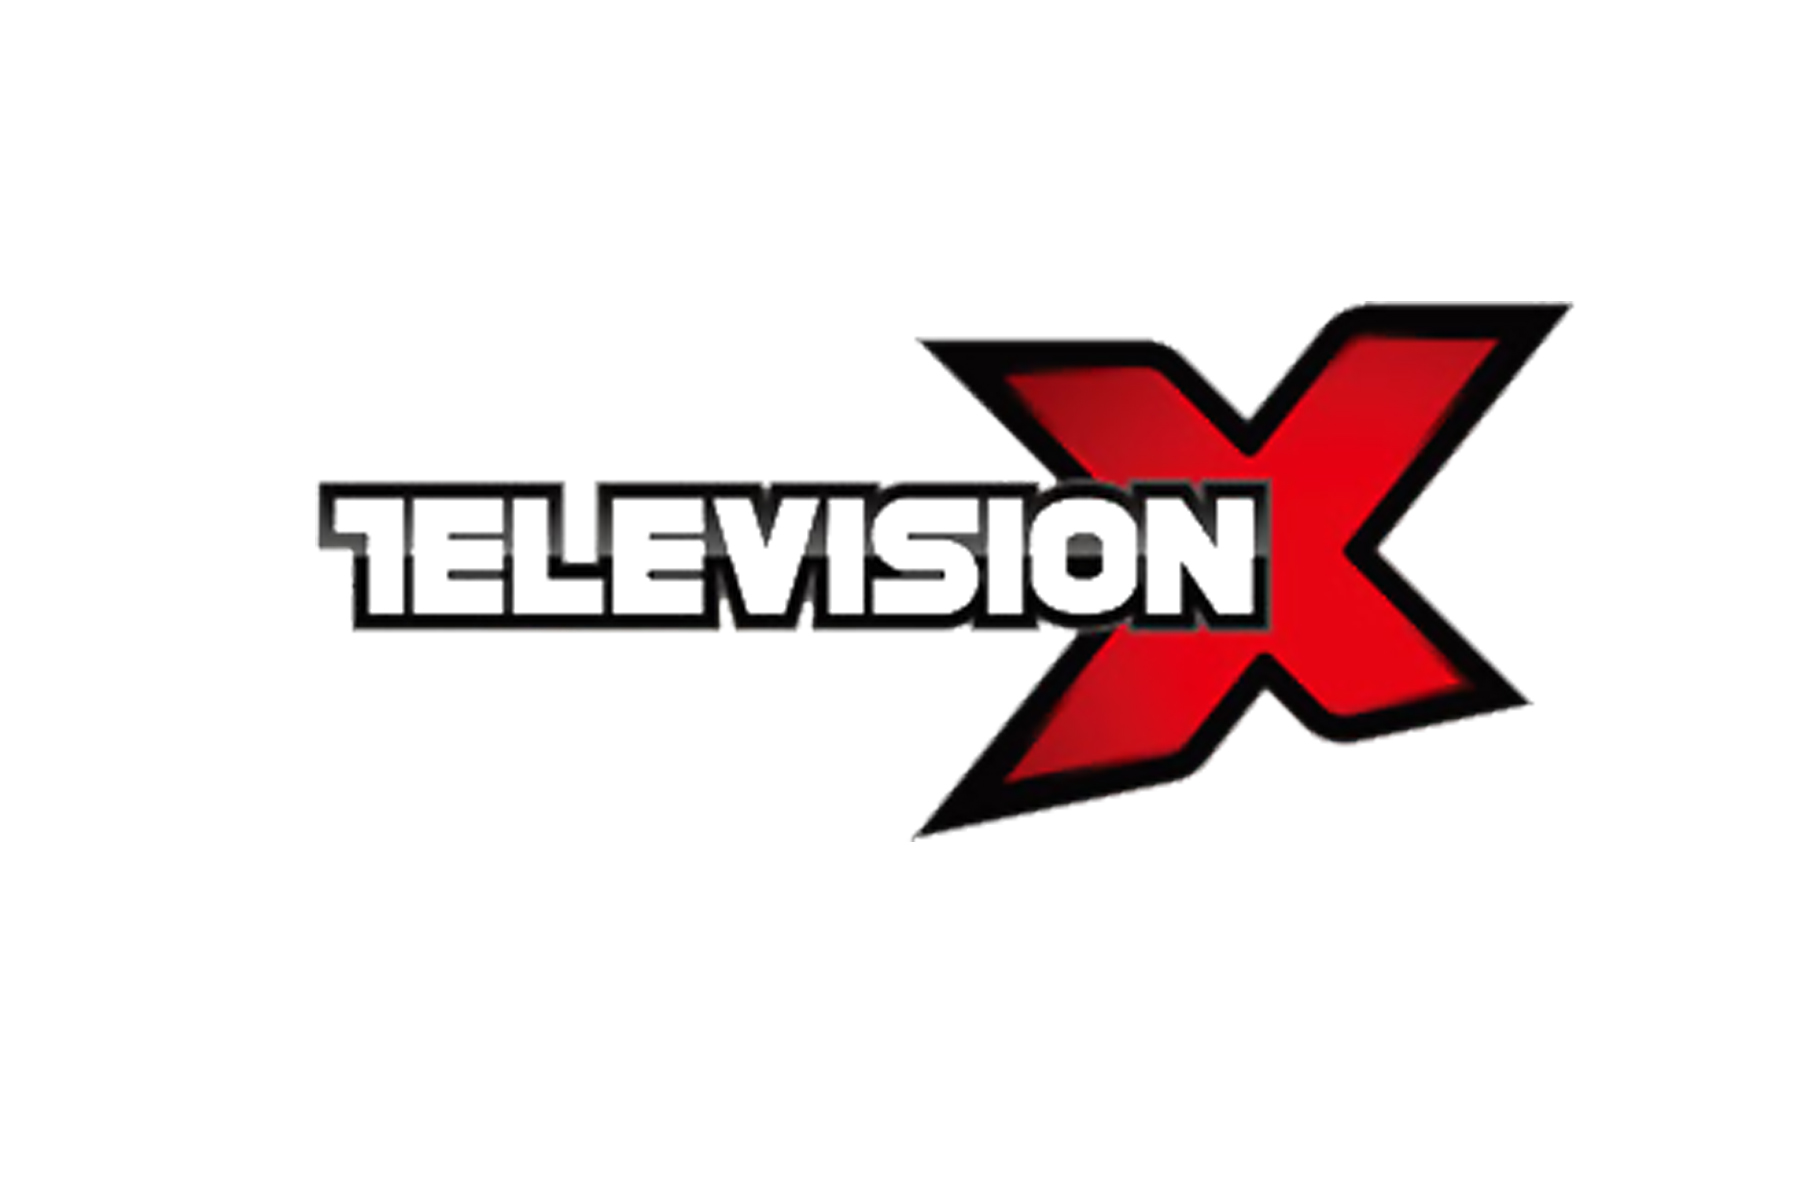 Chris Ratcliff acquires Television X and Portland TV in MBO